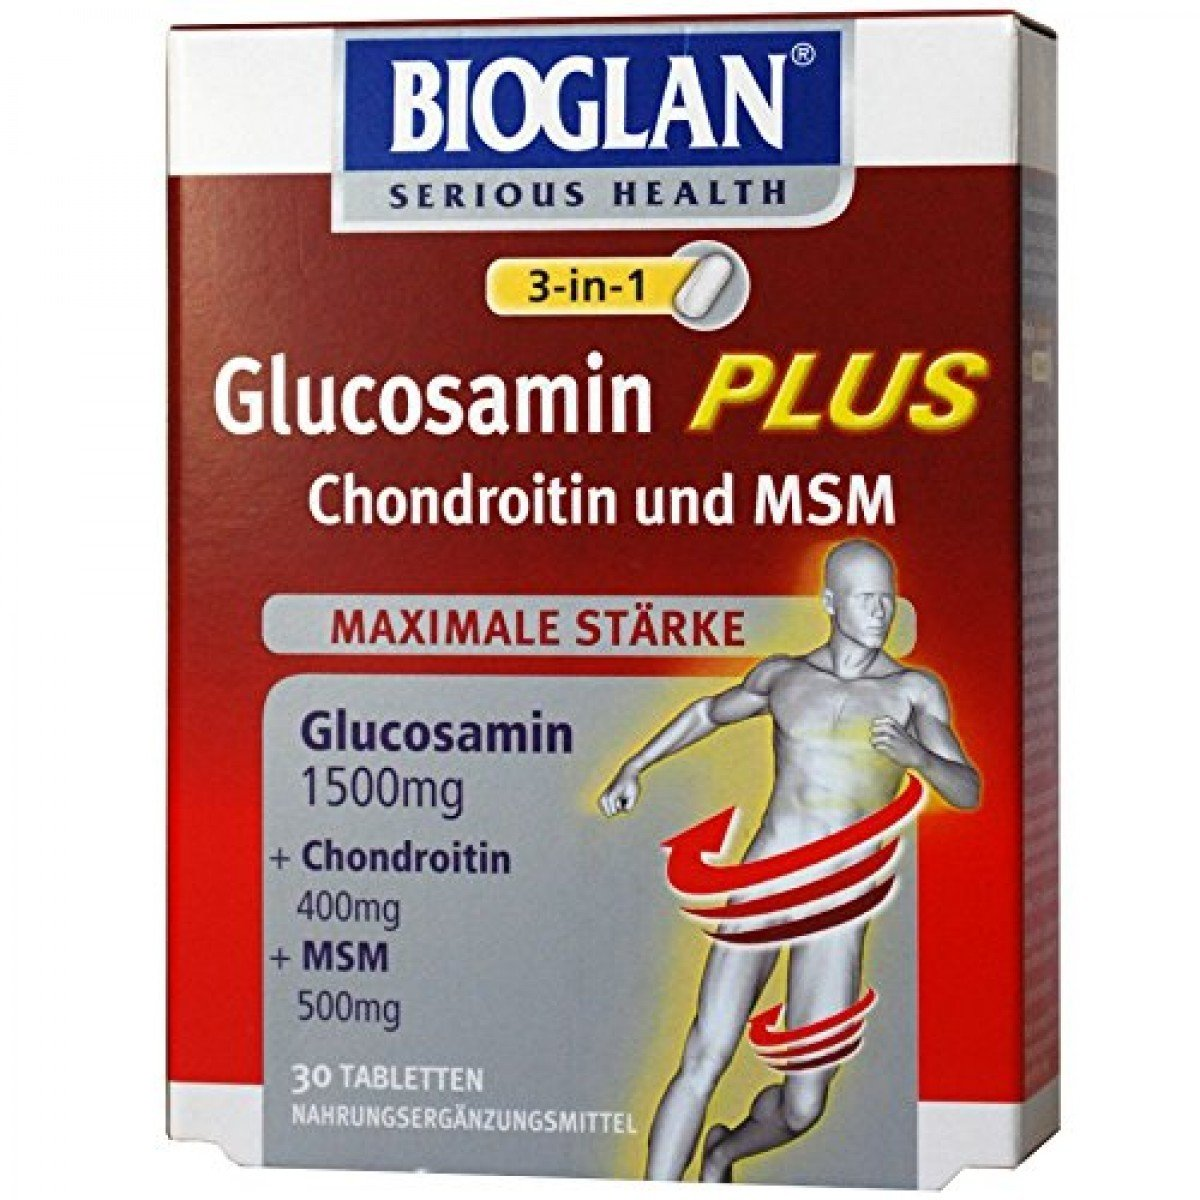 Bioglan 3-in-1 Glucosamine Plus Chondroitin and MSM: Amazon ...